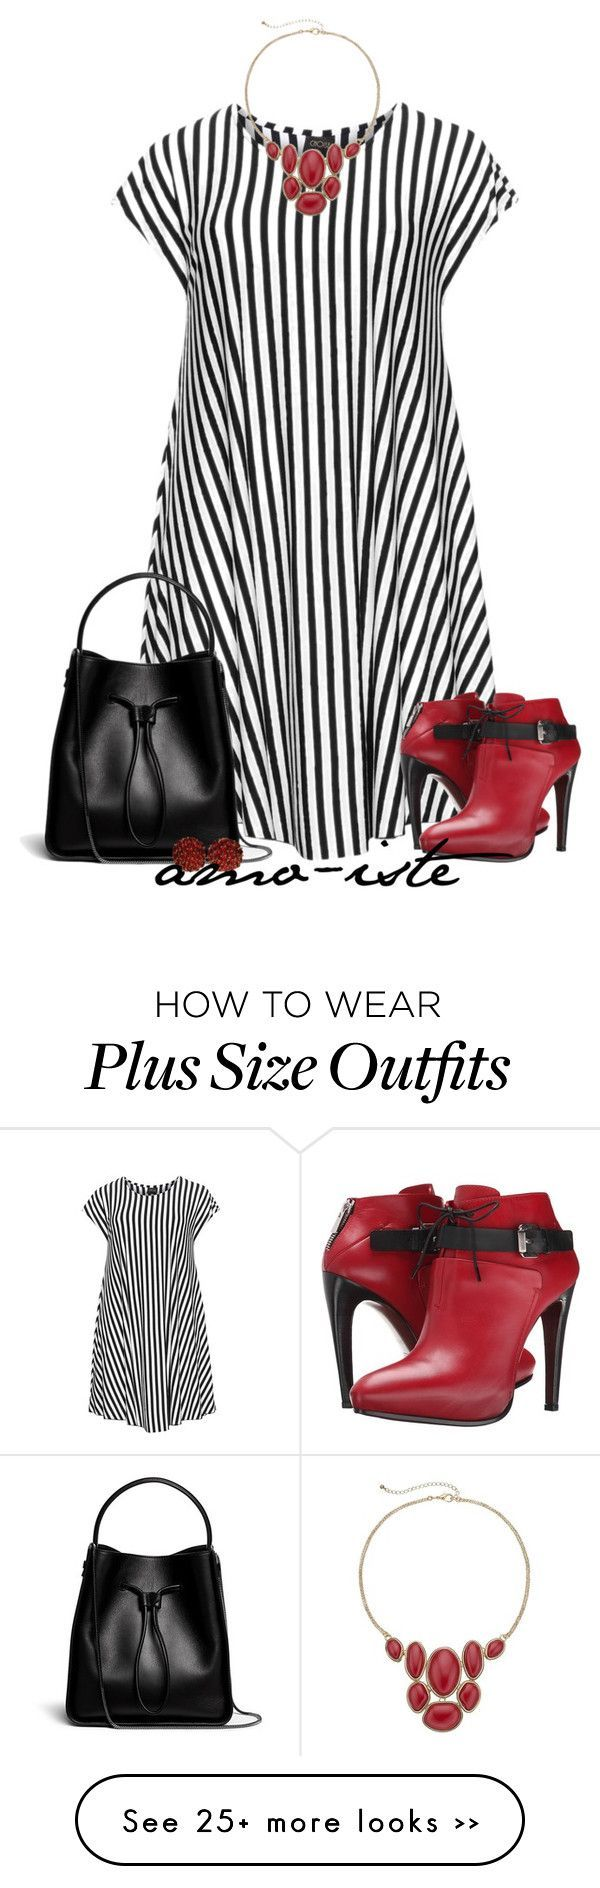 5 ways to wear a striped garment without looking frumpy